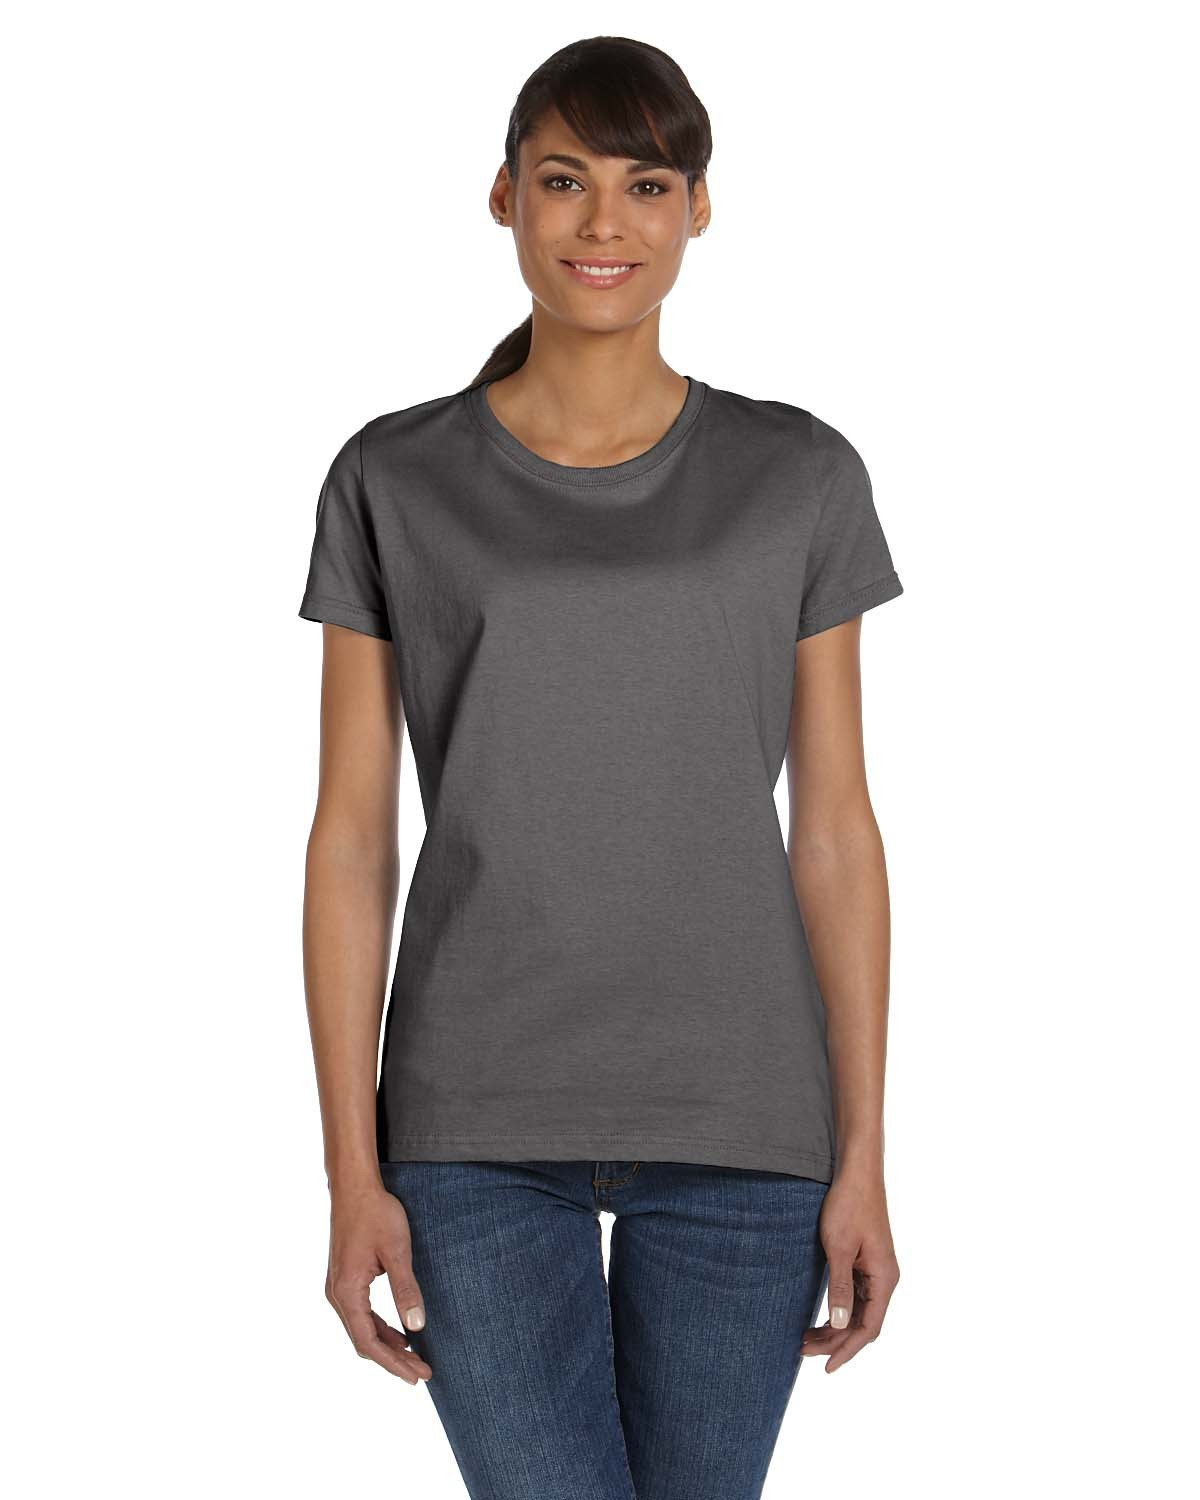 L3930R Fruit of the Loom CHARCOAL GREY